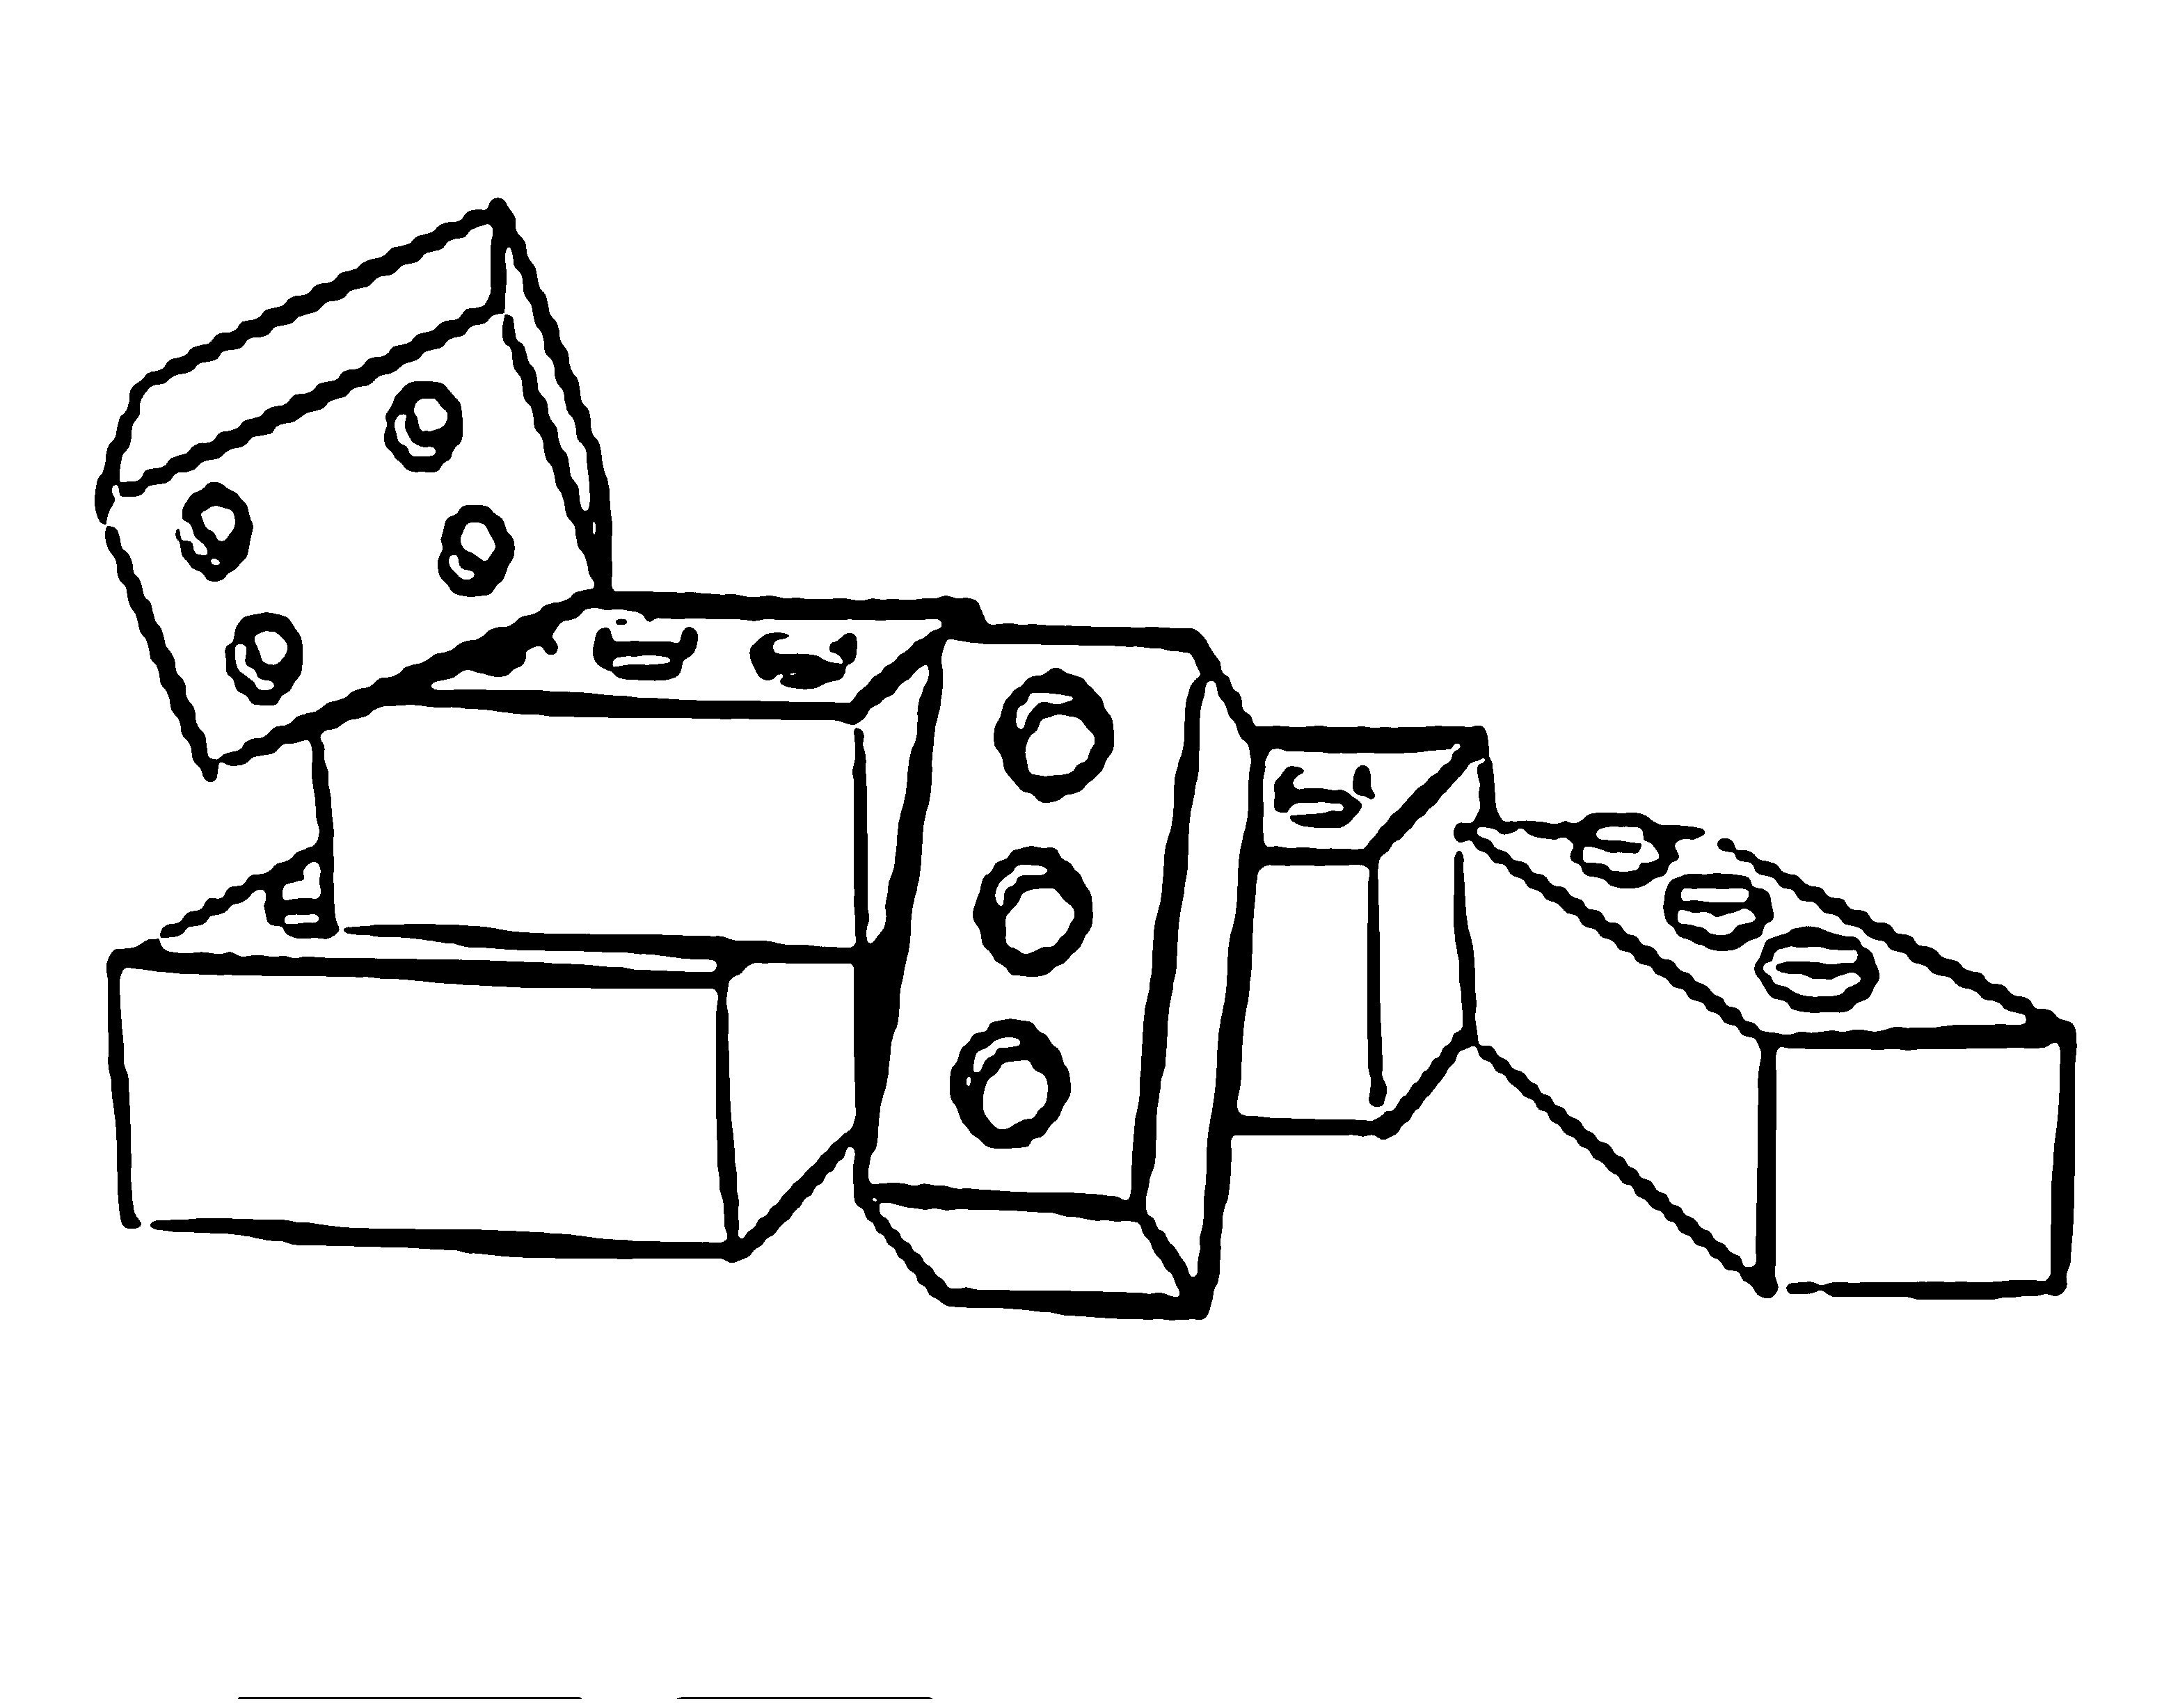 boxee lego coloring pages - photo#22